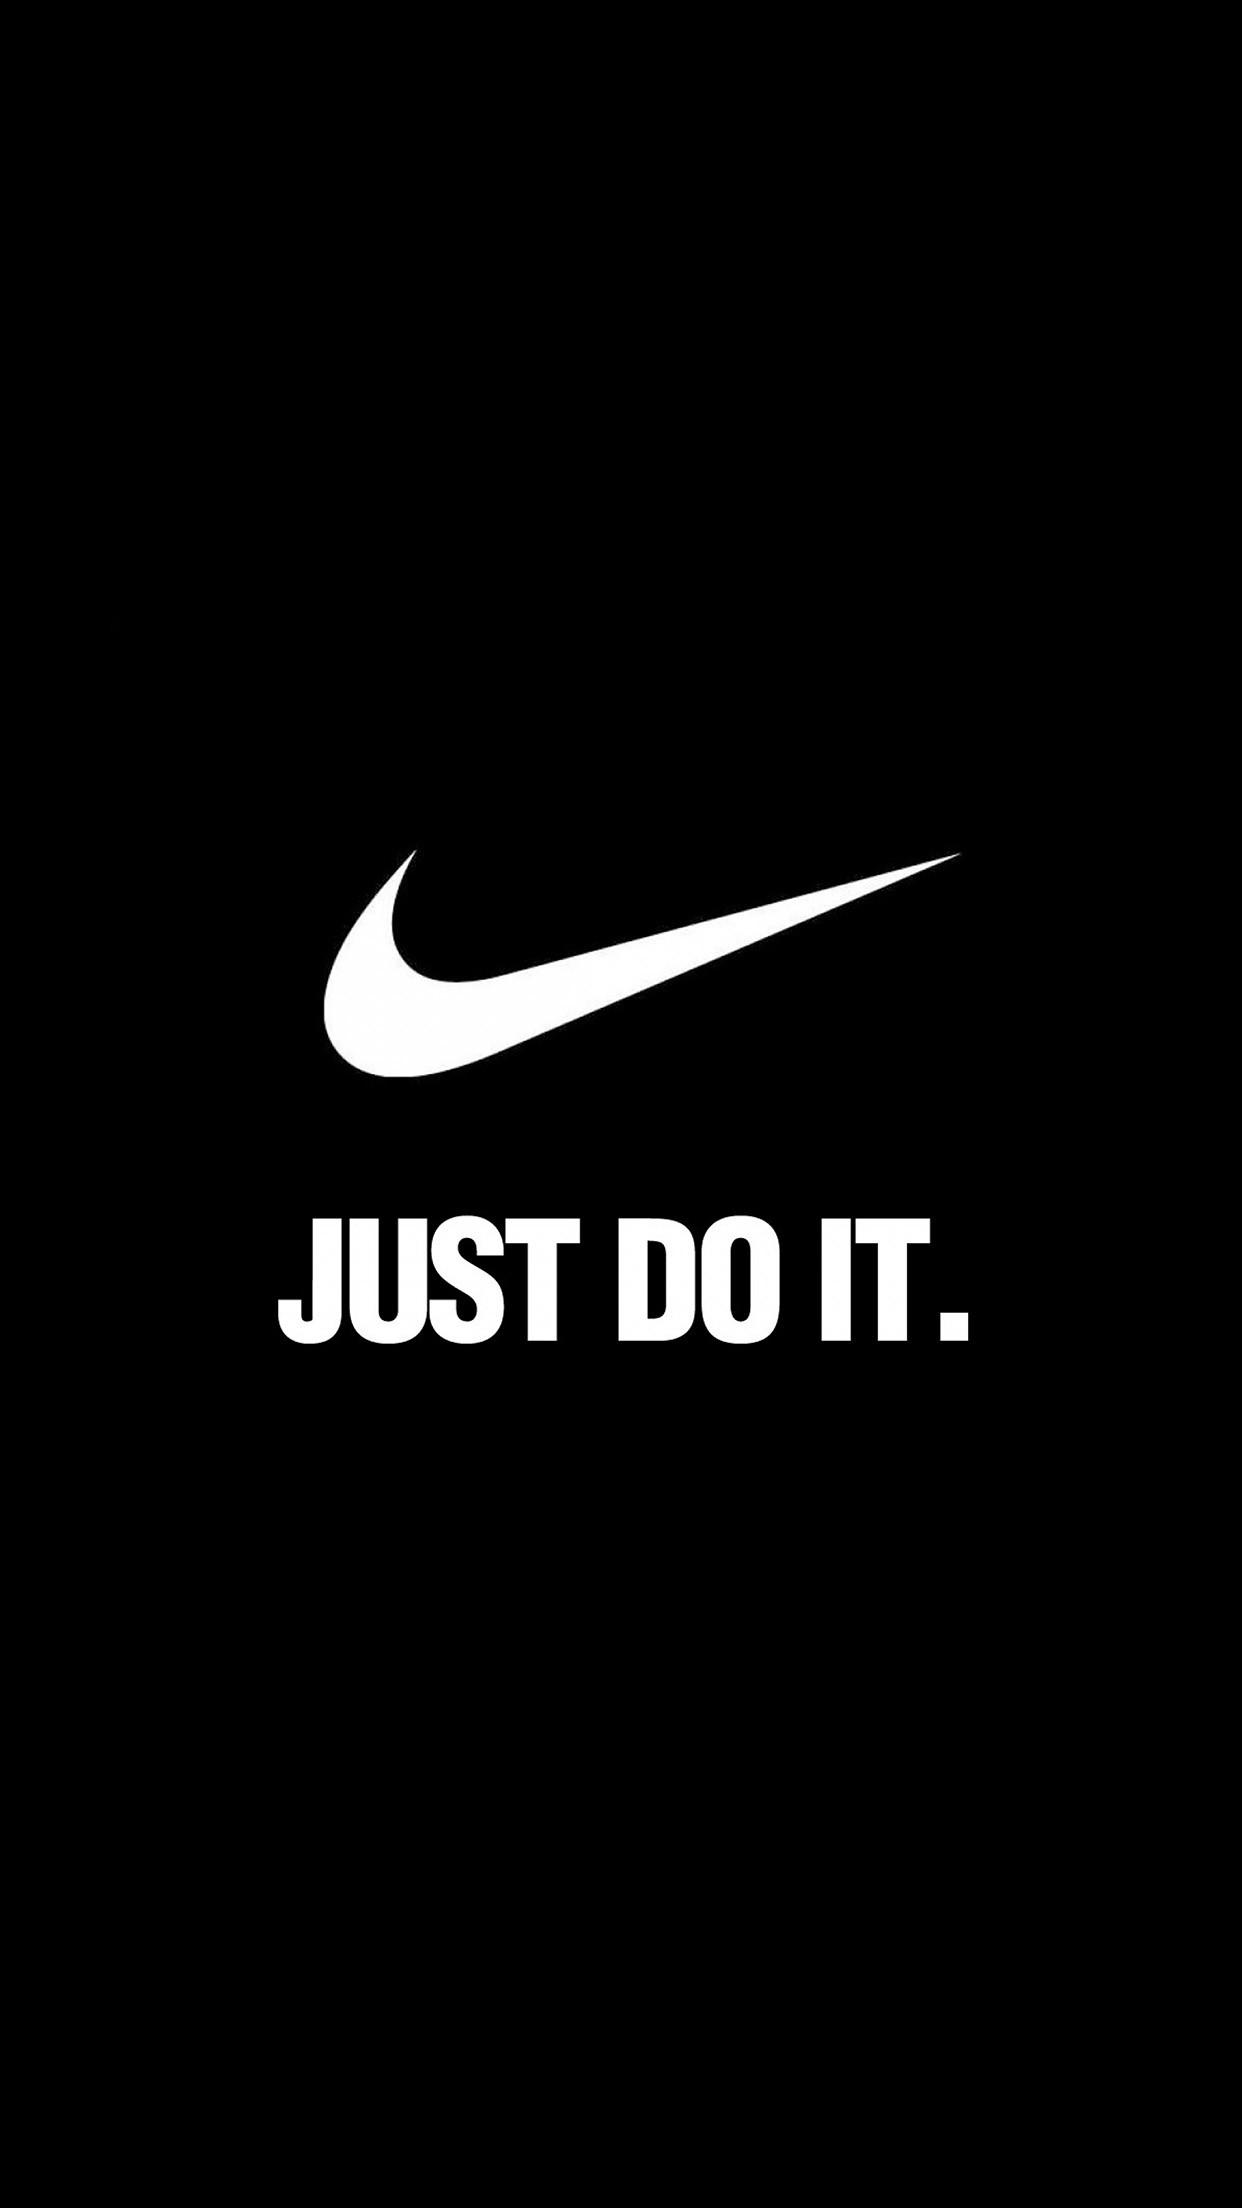 Explore Nike Wallpaper Iphone, Iphone Wallpapers, and more!